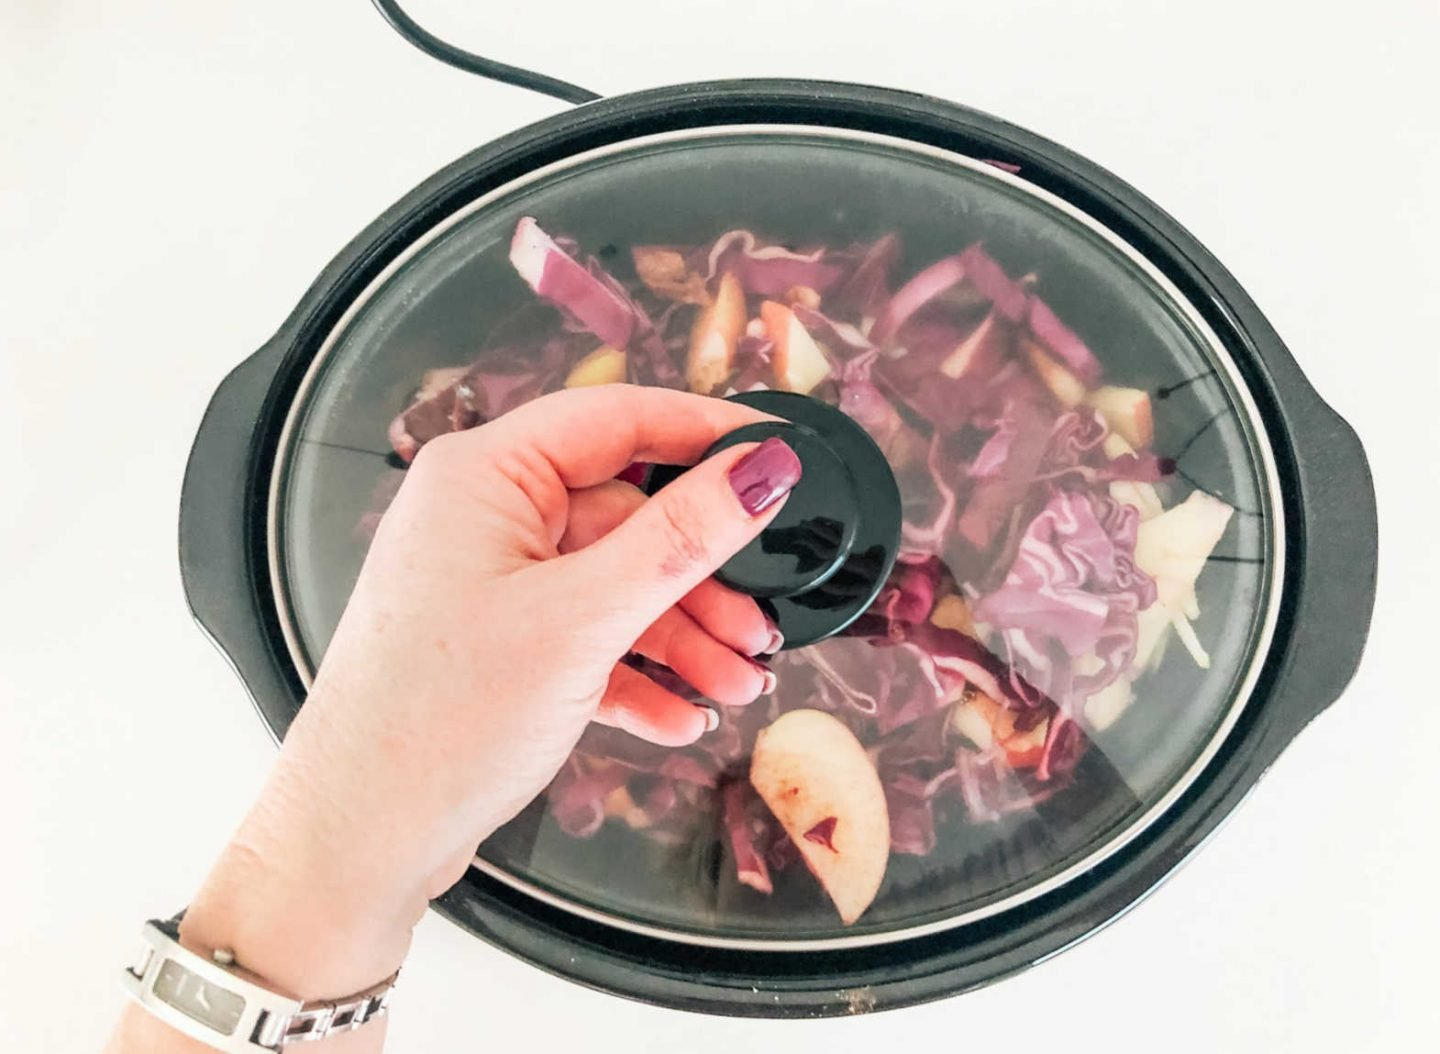 Red cabbage cooked in a slow cooker